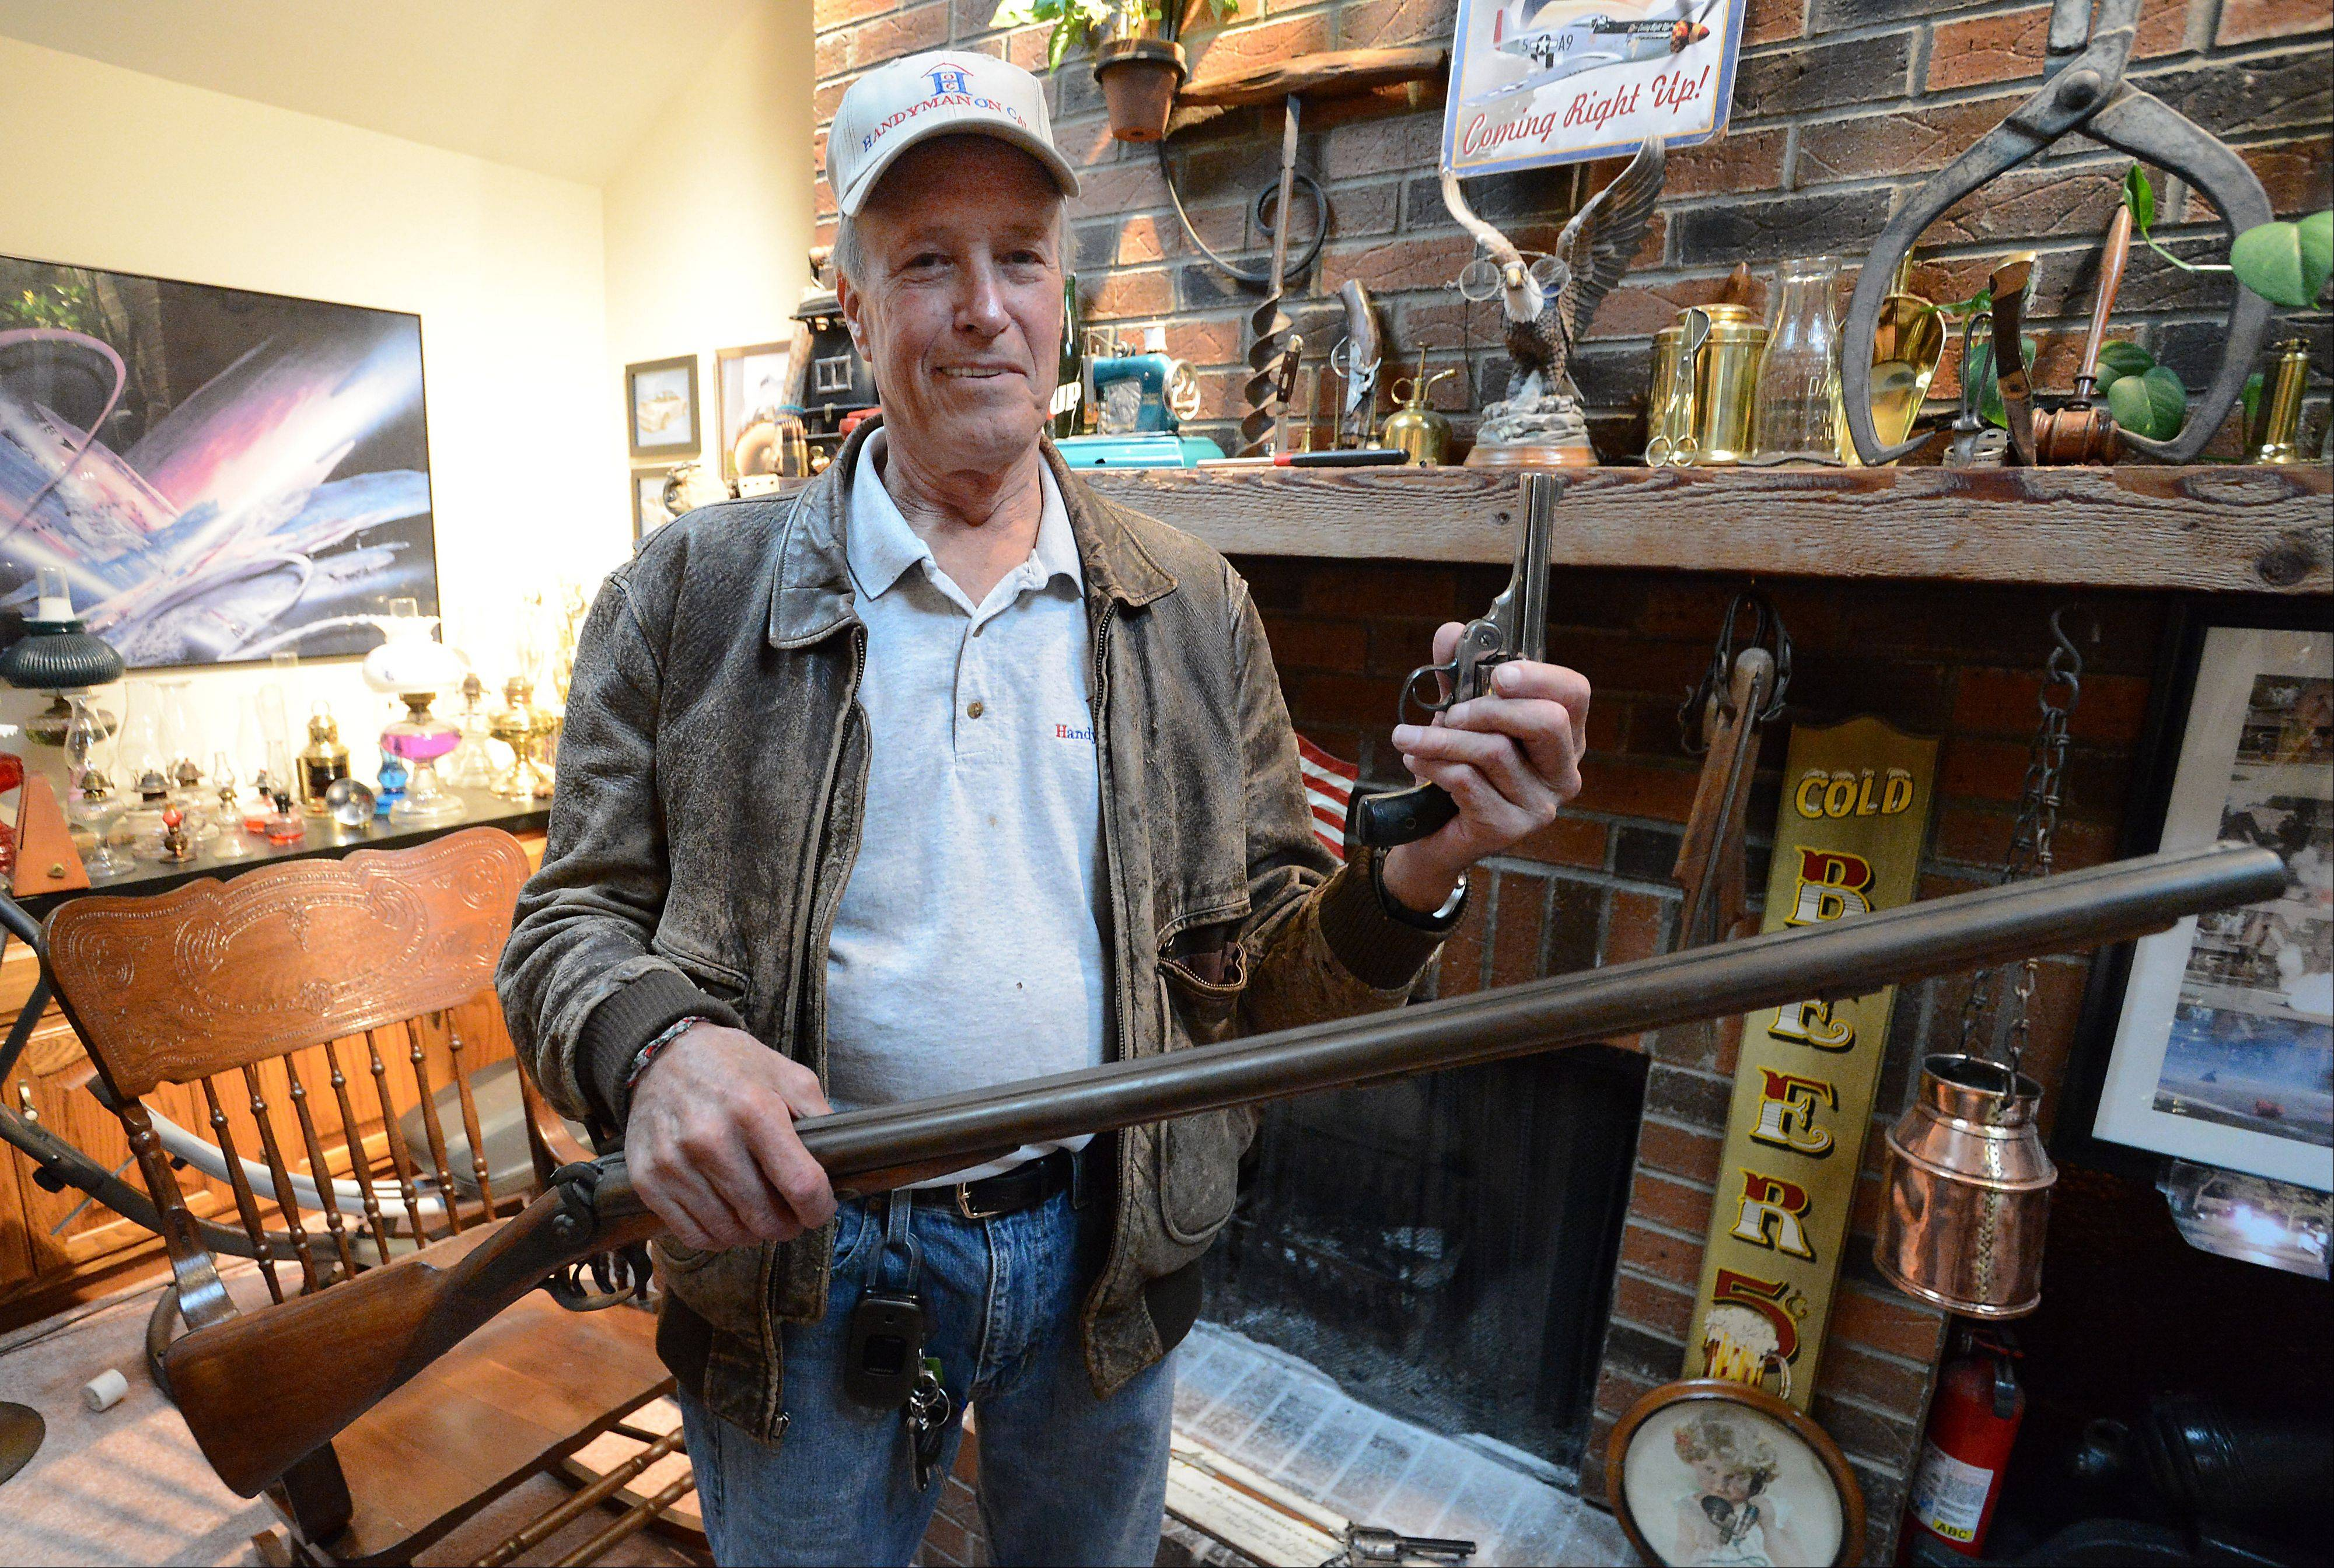 Arthur Lovi is suing the Arlington Heights police for what he says was an illegal search of his home and seizing of three antique guns, including a double barrel musket that's more than 100 years old.